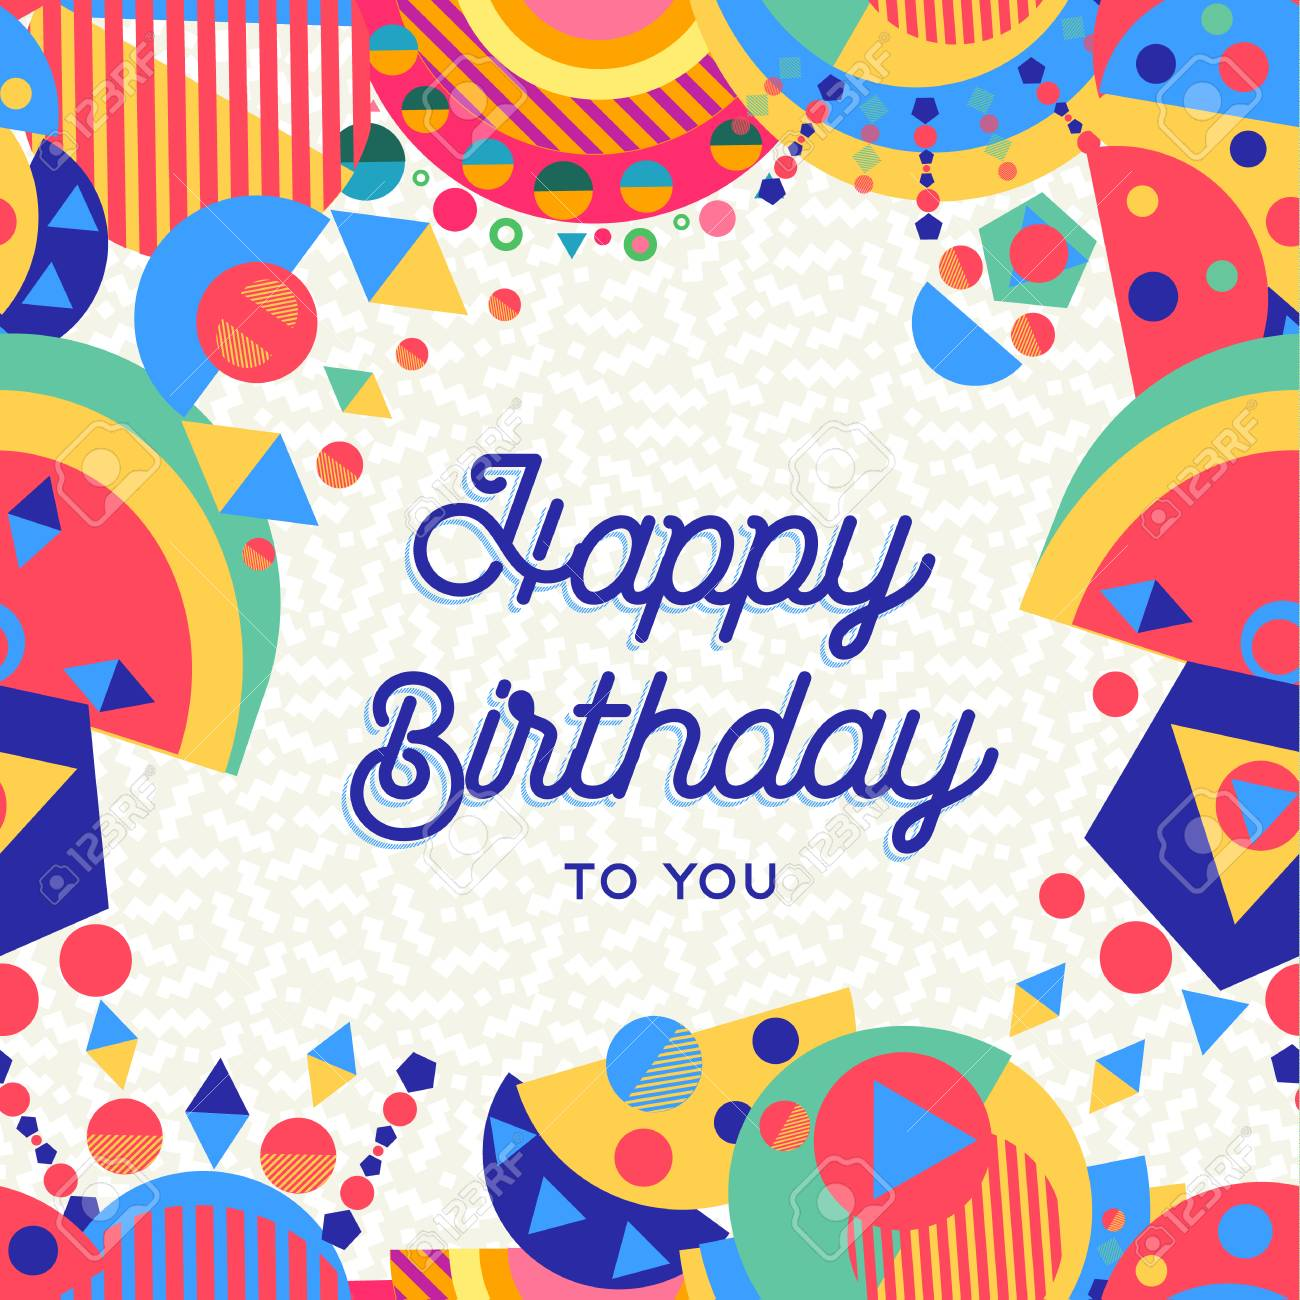 Happy Birthday Greeting Card Design For Party Invitation Or Special